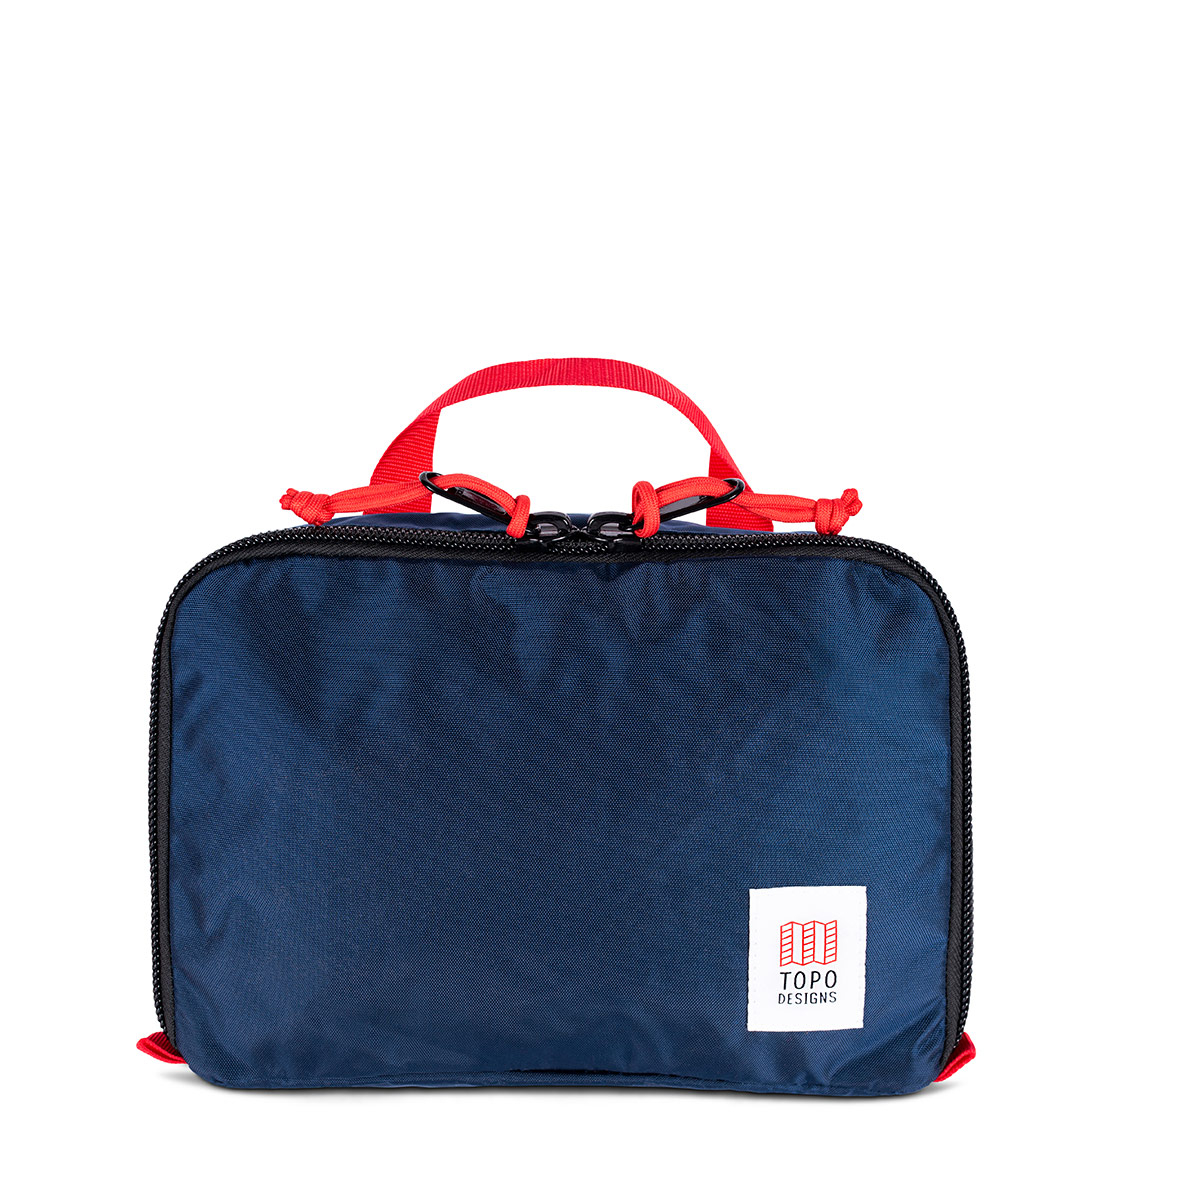 Topo Designs Pack Bag 5L Navy, a simple, durable and highly functional way to organize your luggage